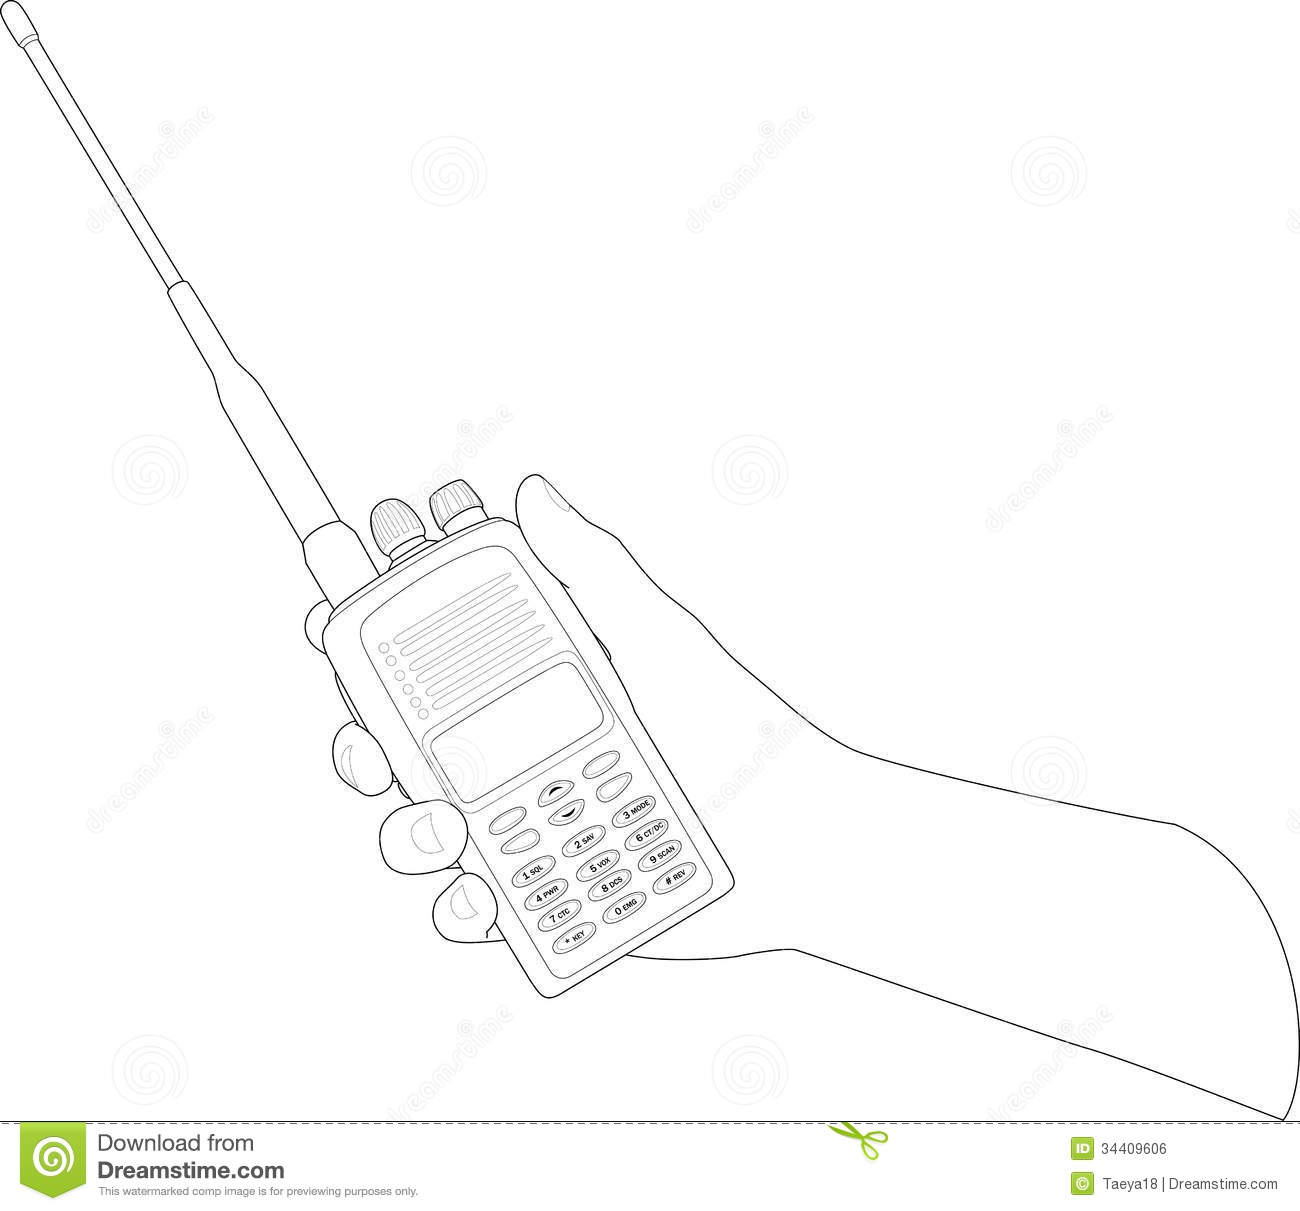 walky talky stock illustration  illustration of hand